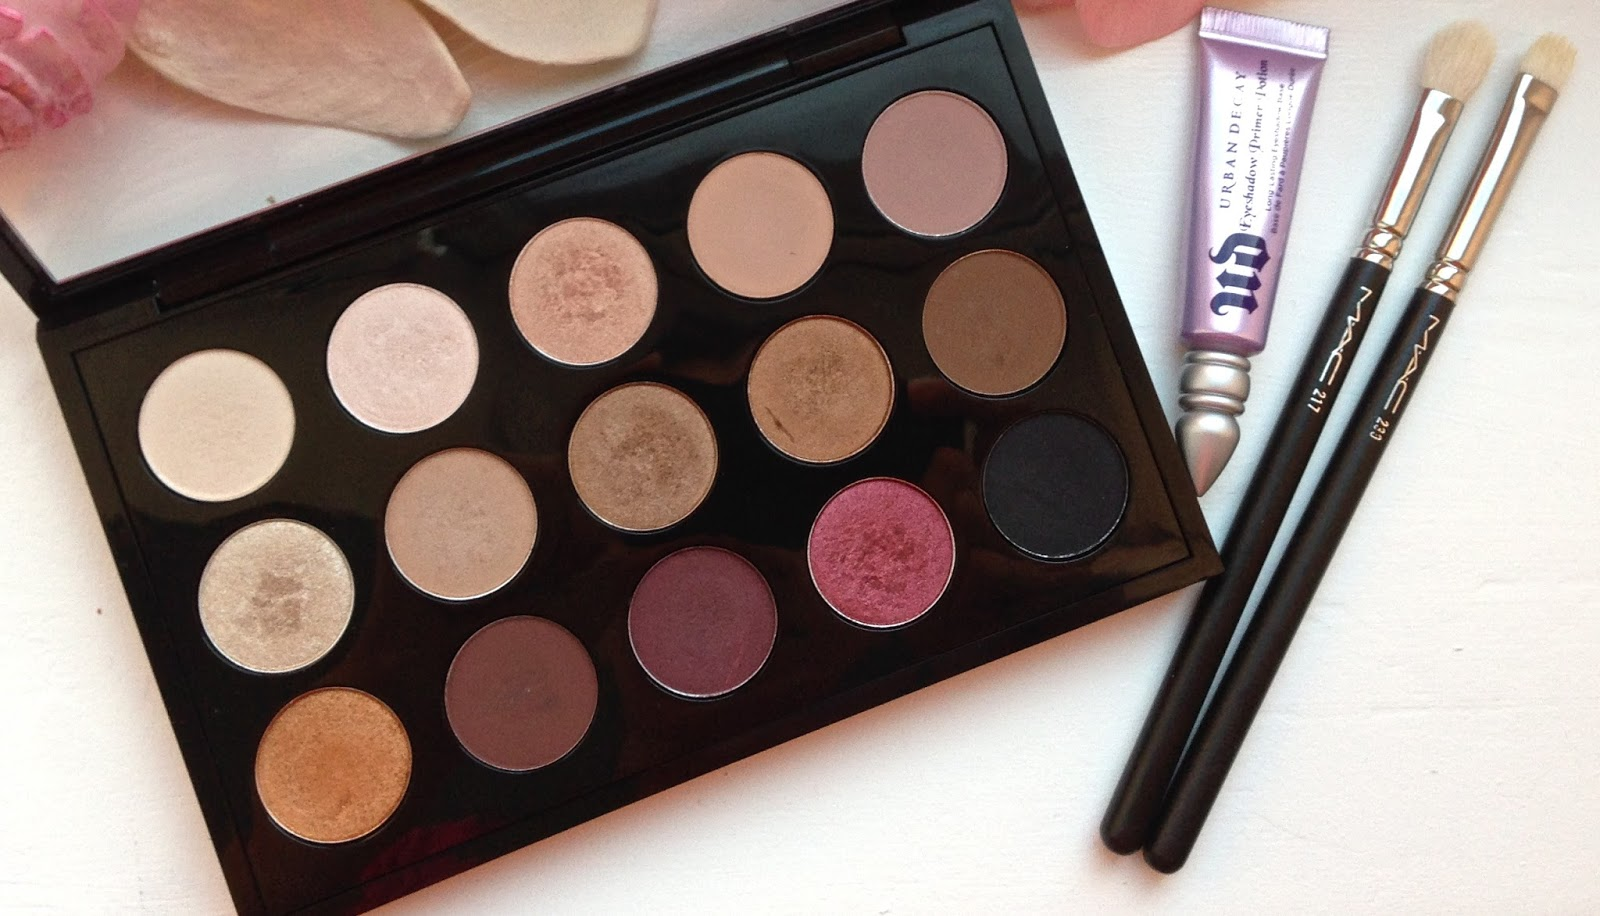 MAC Palette, Urban Decay Eyeshadow Primer, MAC 217 brush, MAC 239 brush